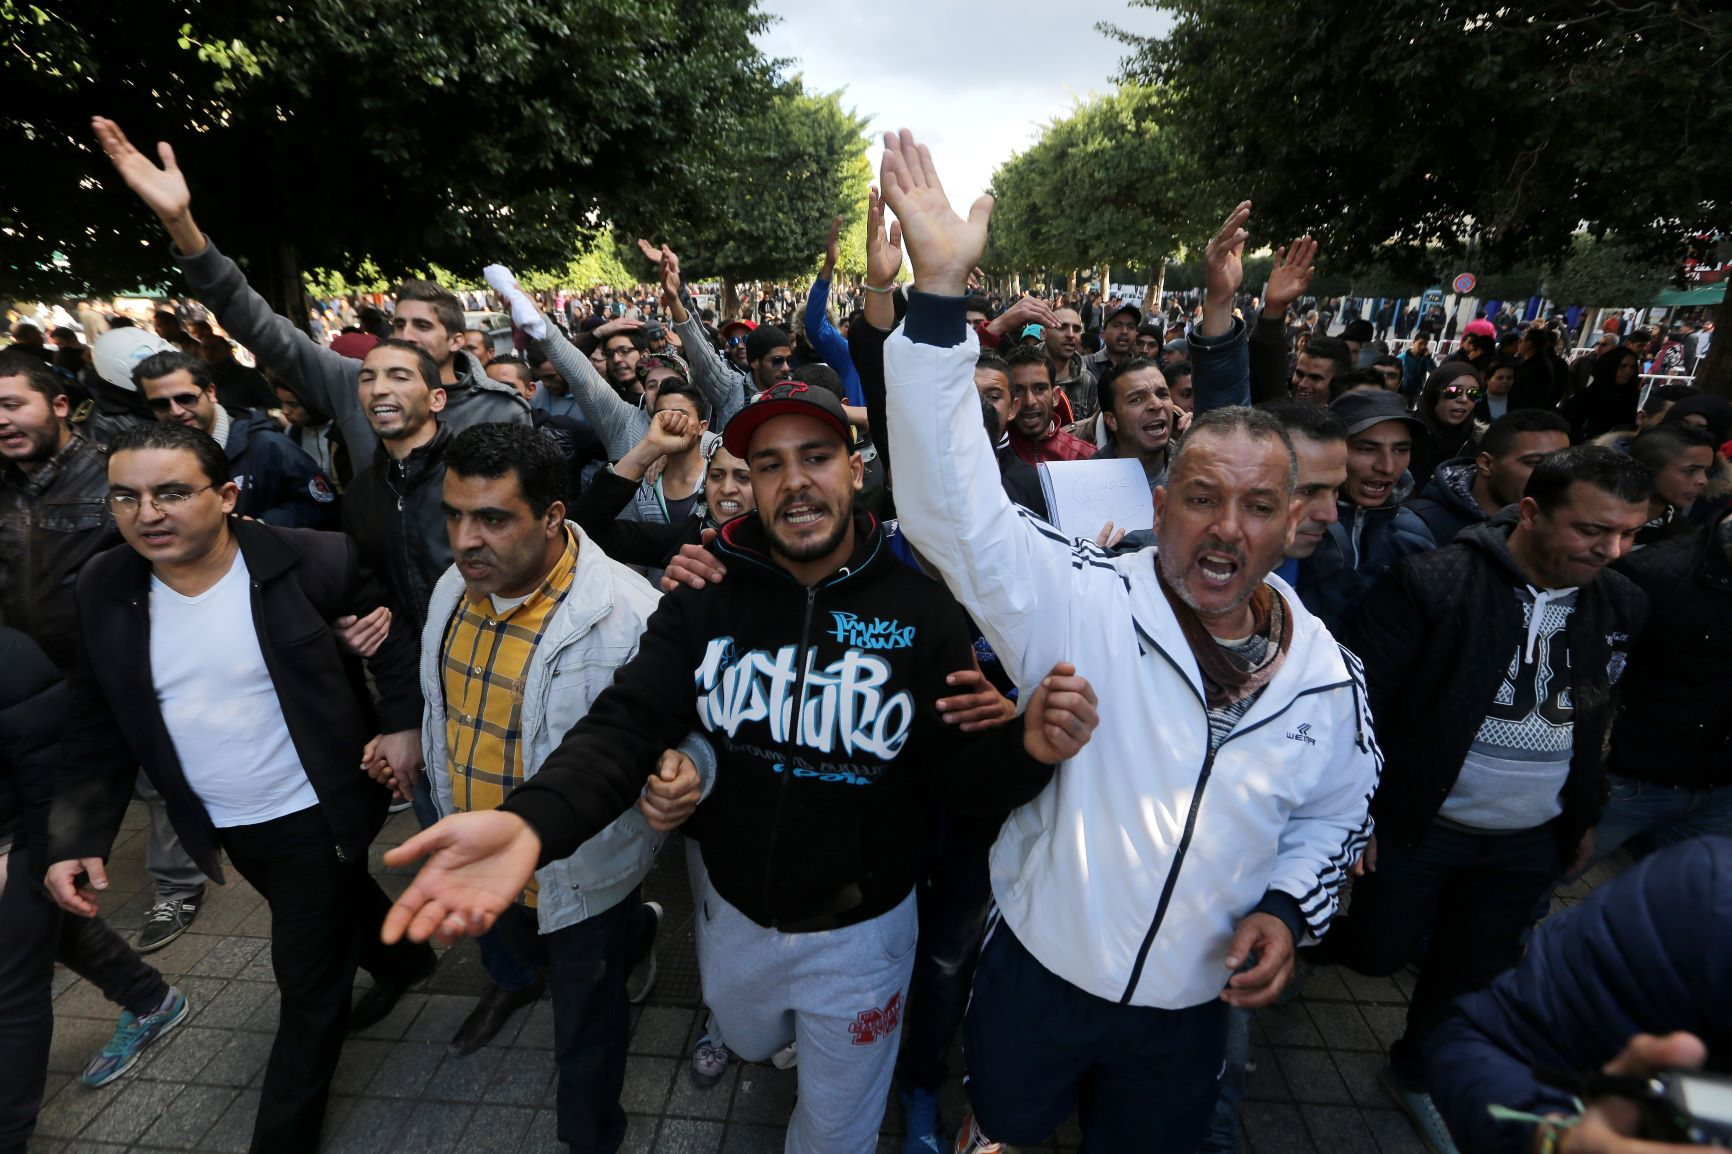 Tunisia,students,dropping out